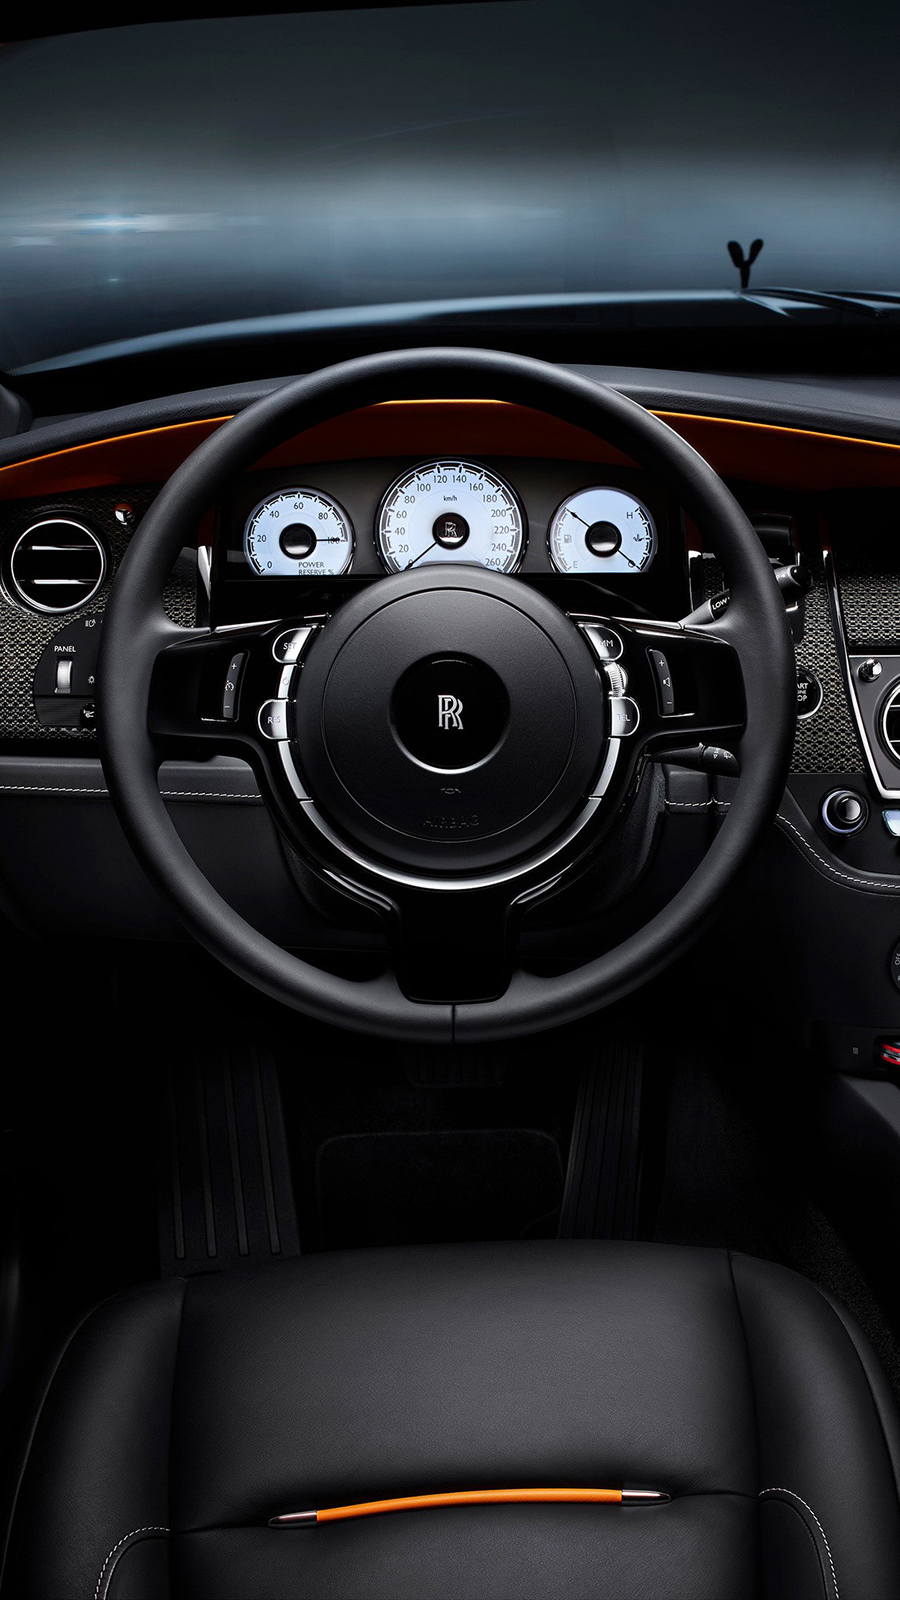 Best Wallpapers about In the Car for Phone